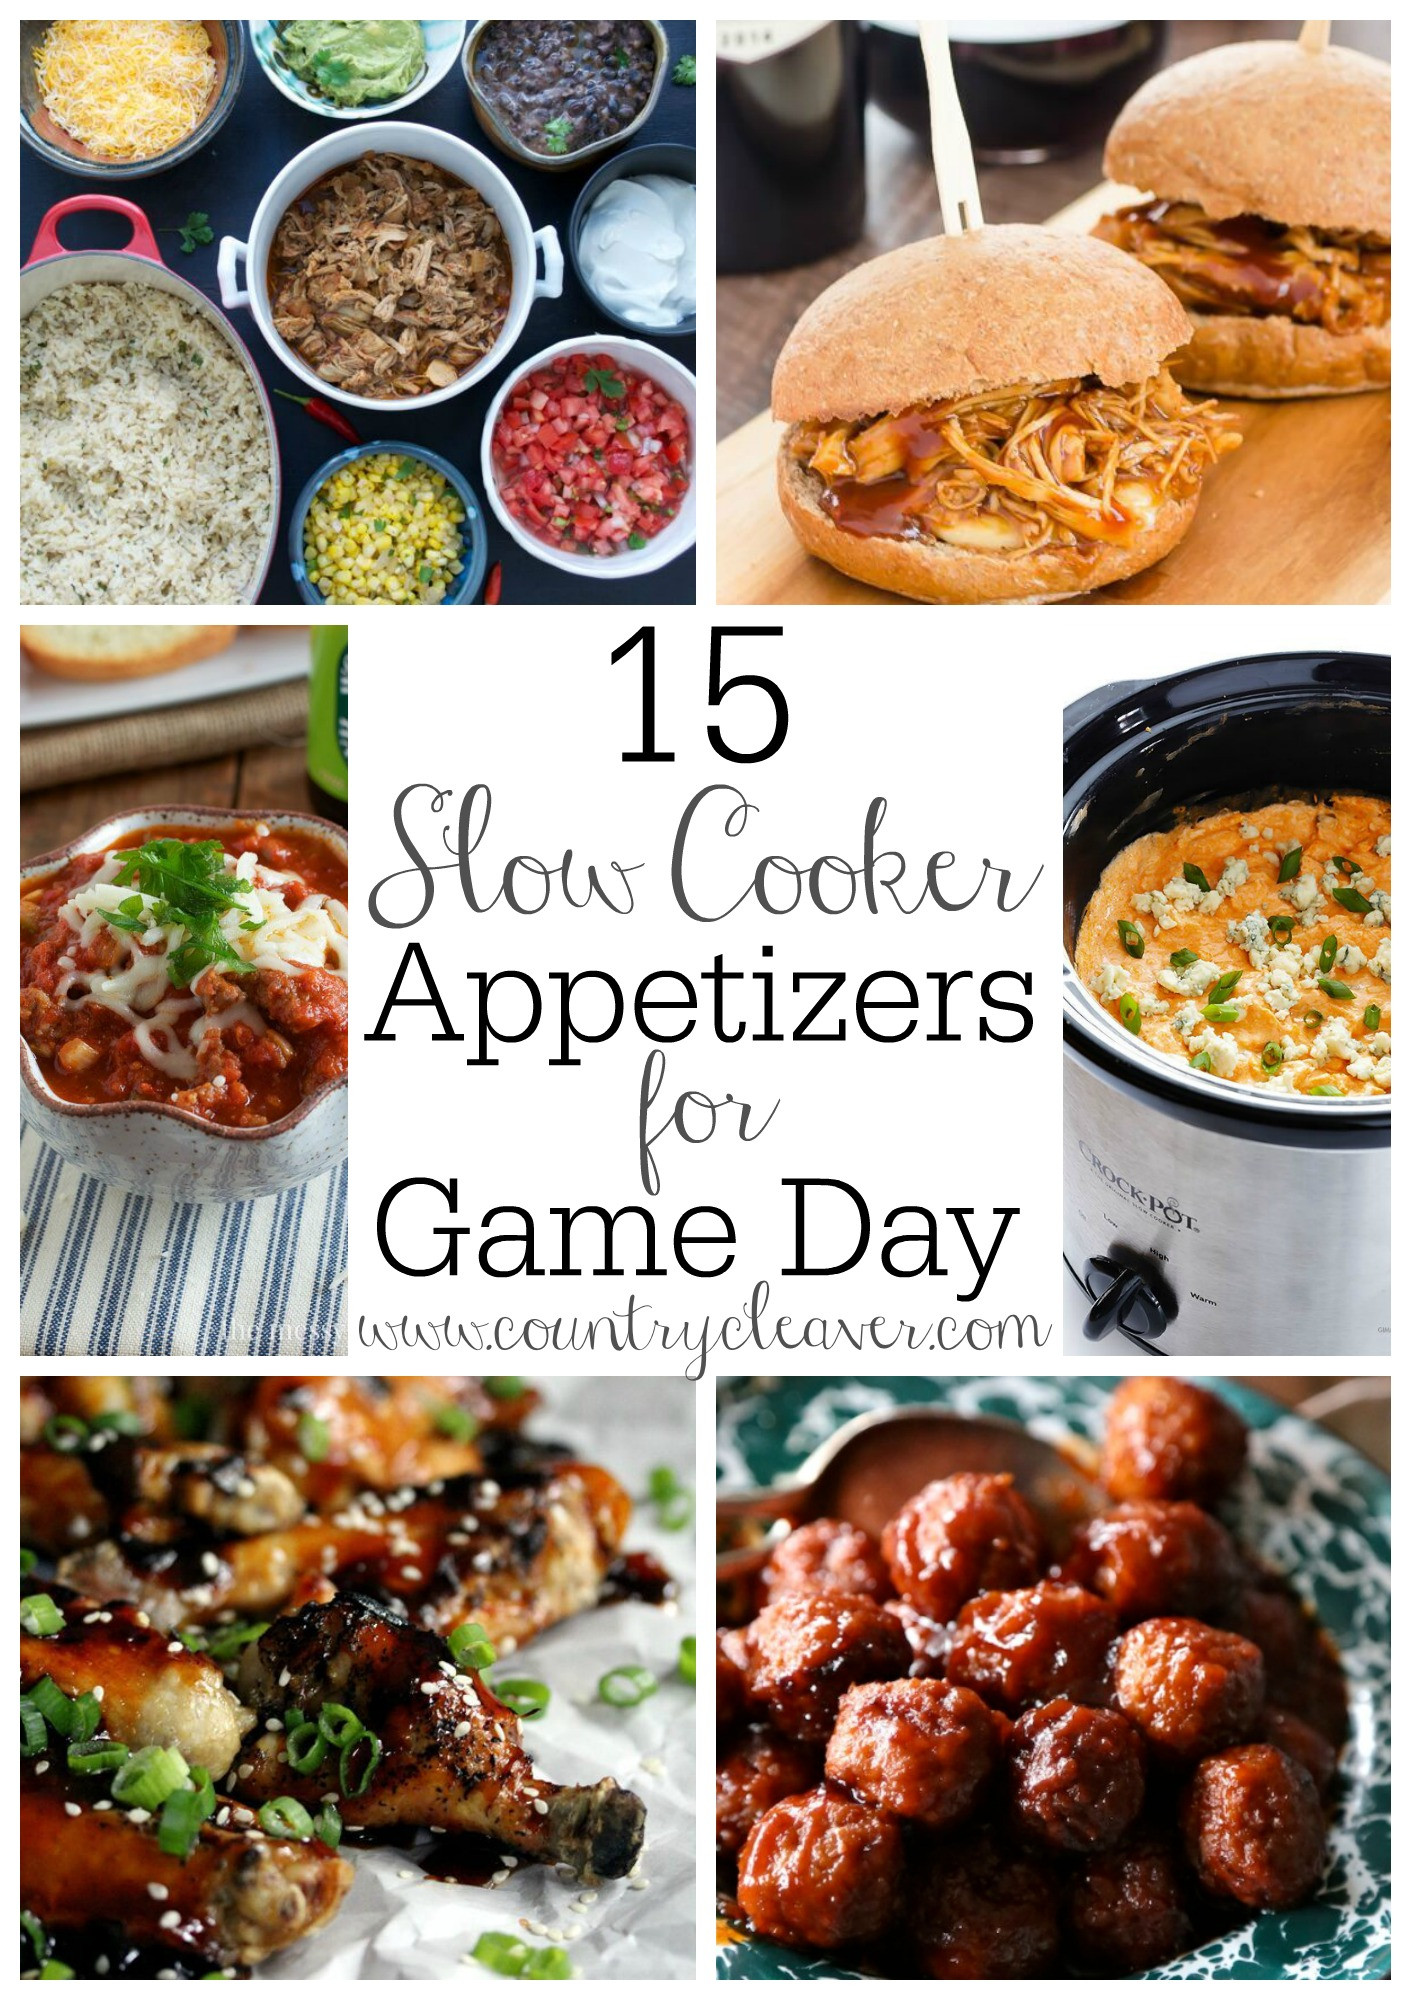 Slow Cooker Appetizers  15 Slow Cooker Appetizers for Game Day Country Cleaver